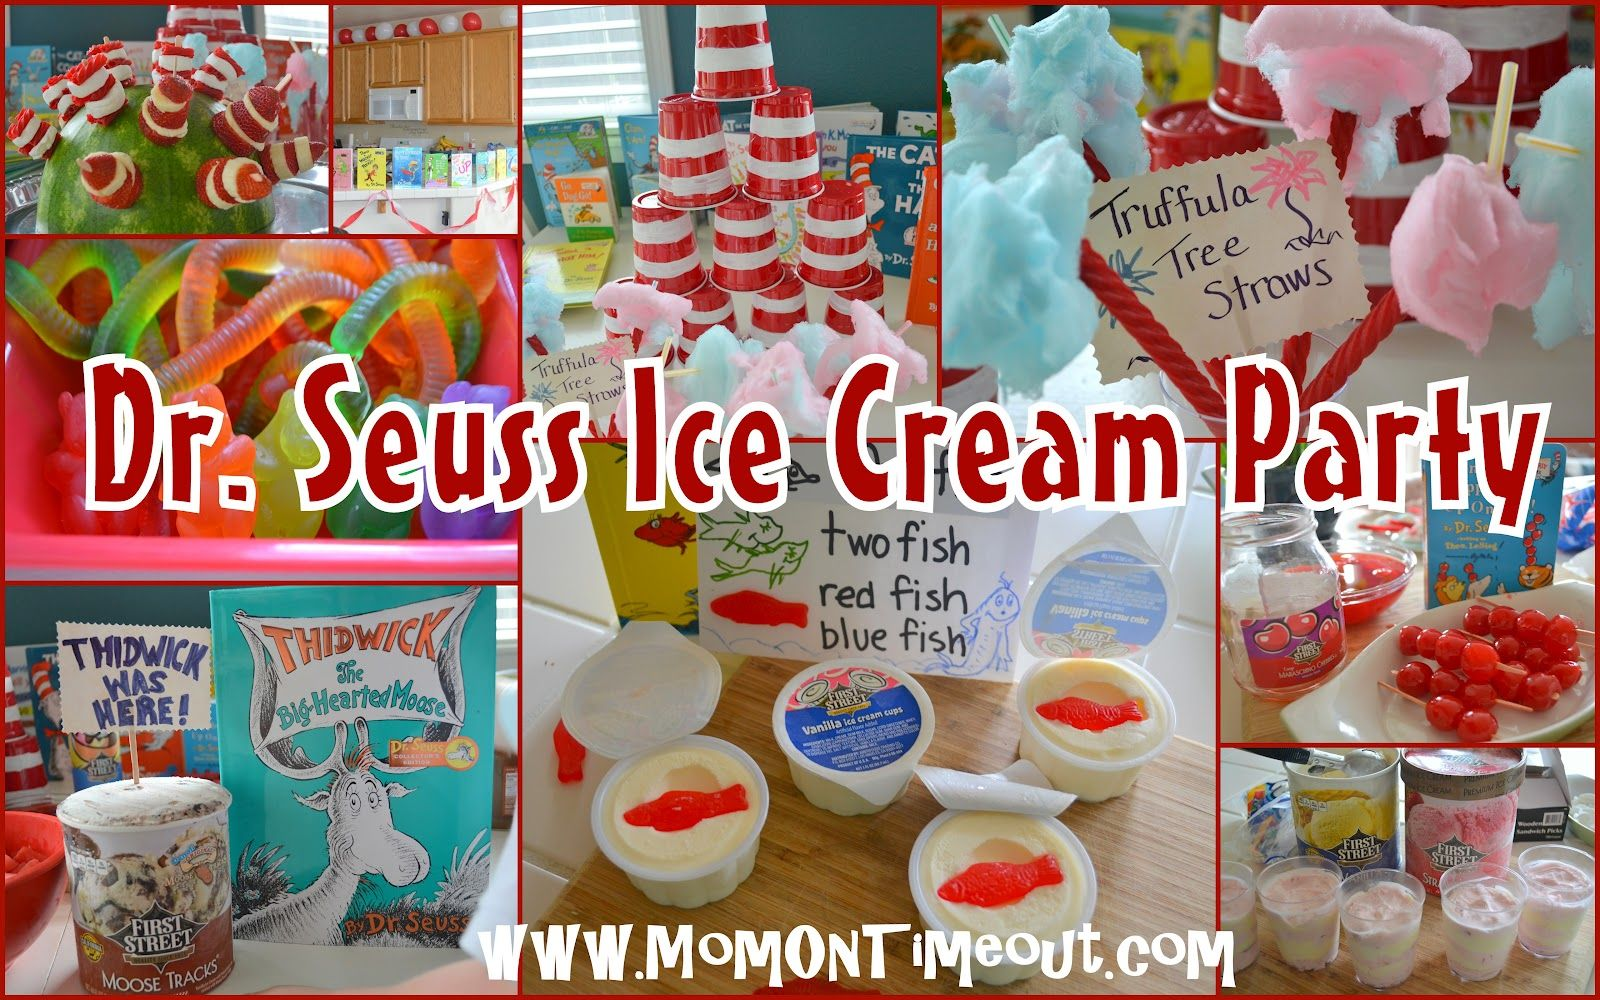 Mom On Timeout: Dr. Seuss Ice Cream Party!